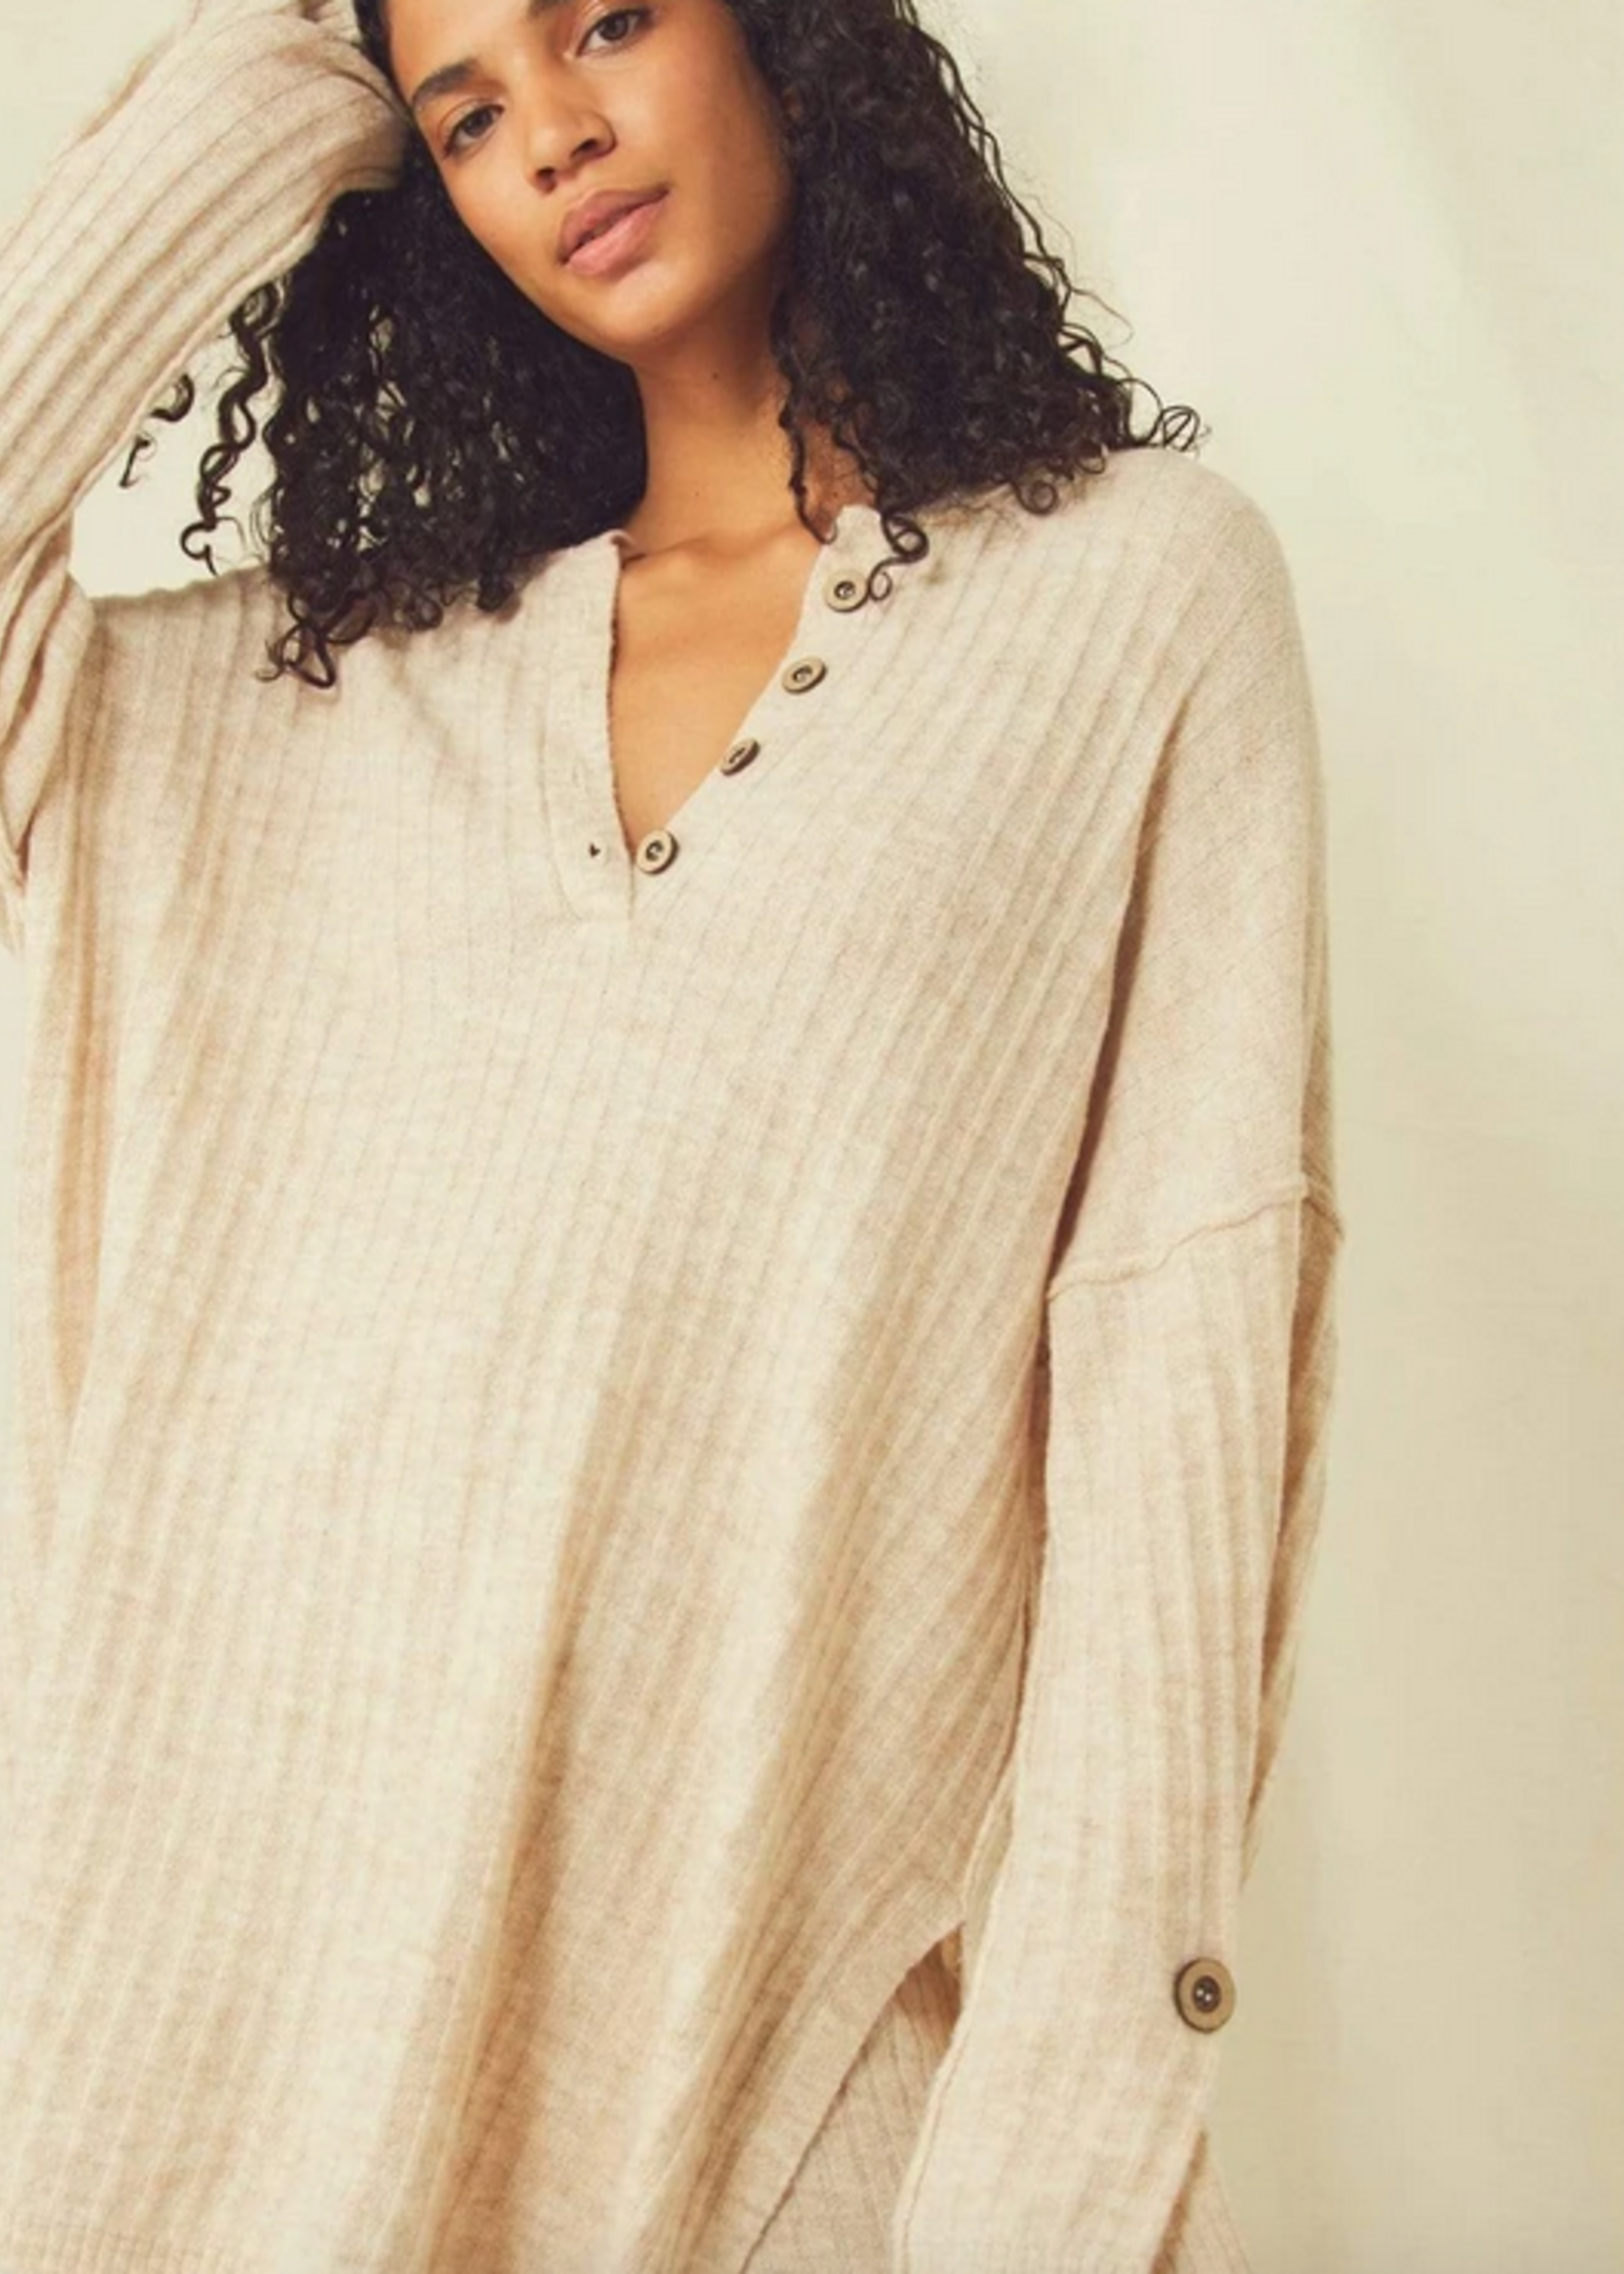 FREE PEOPLE FREE PEOPLE AROUND THE CLOCK PULLOVER OATMEAL